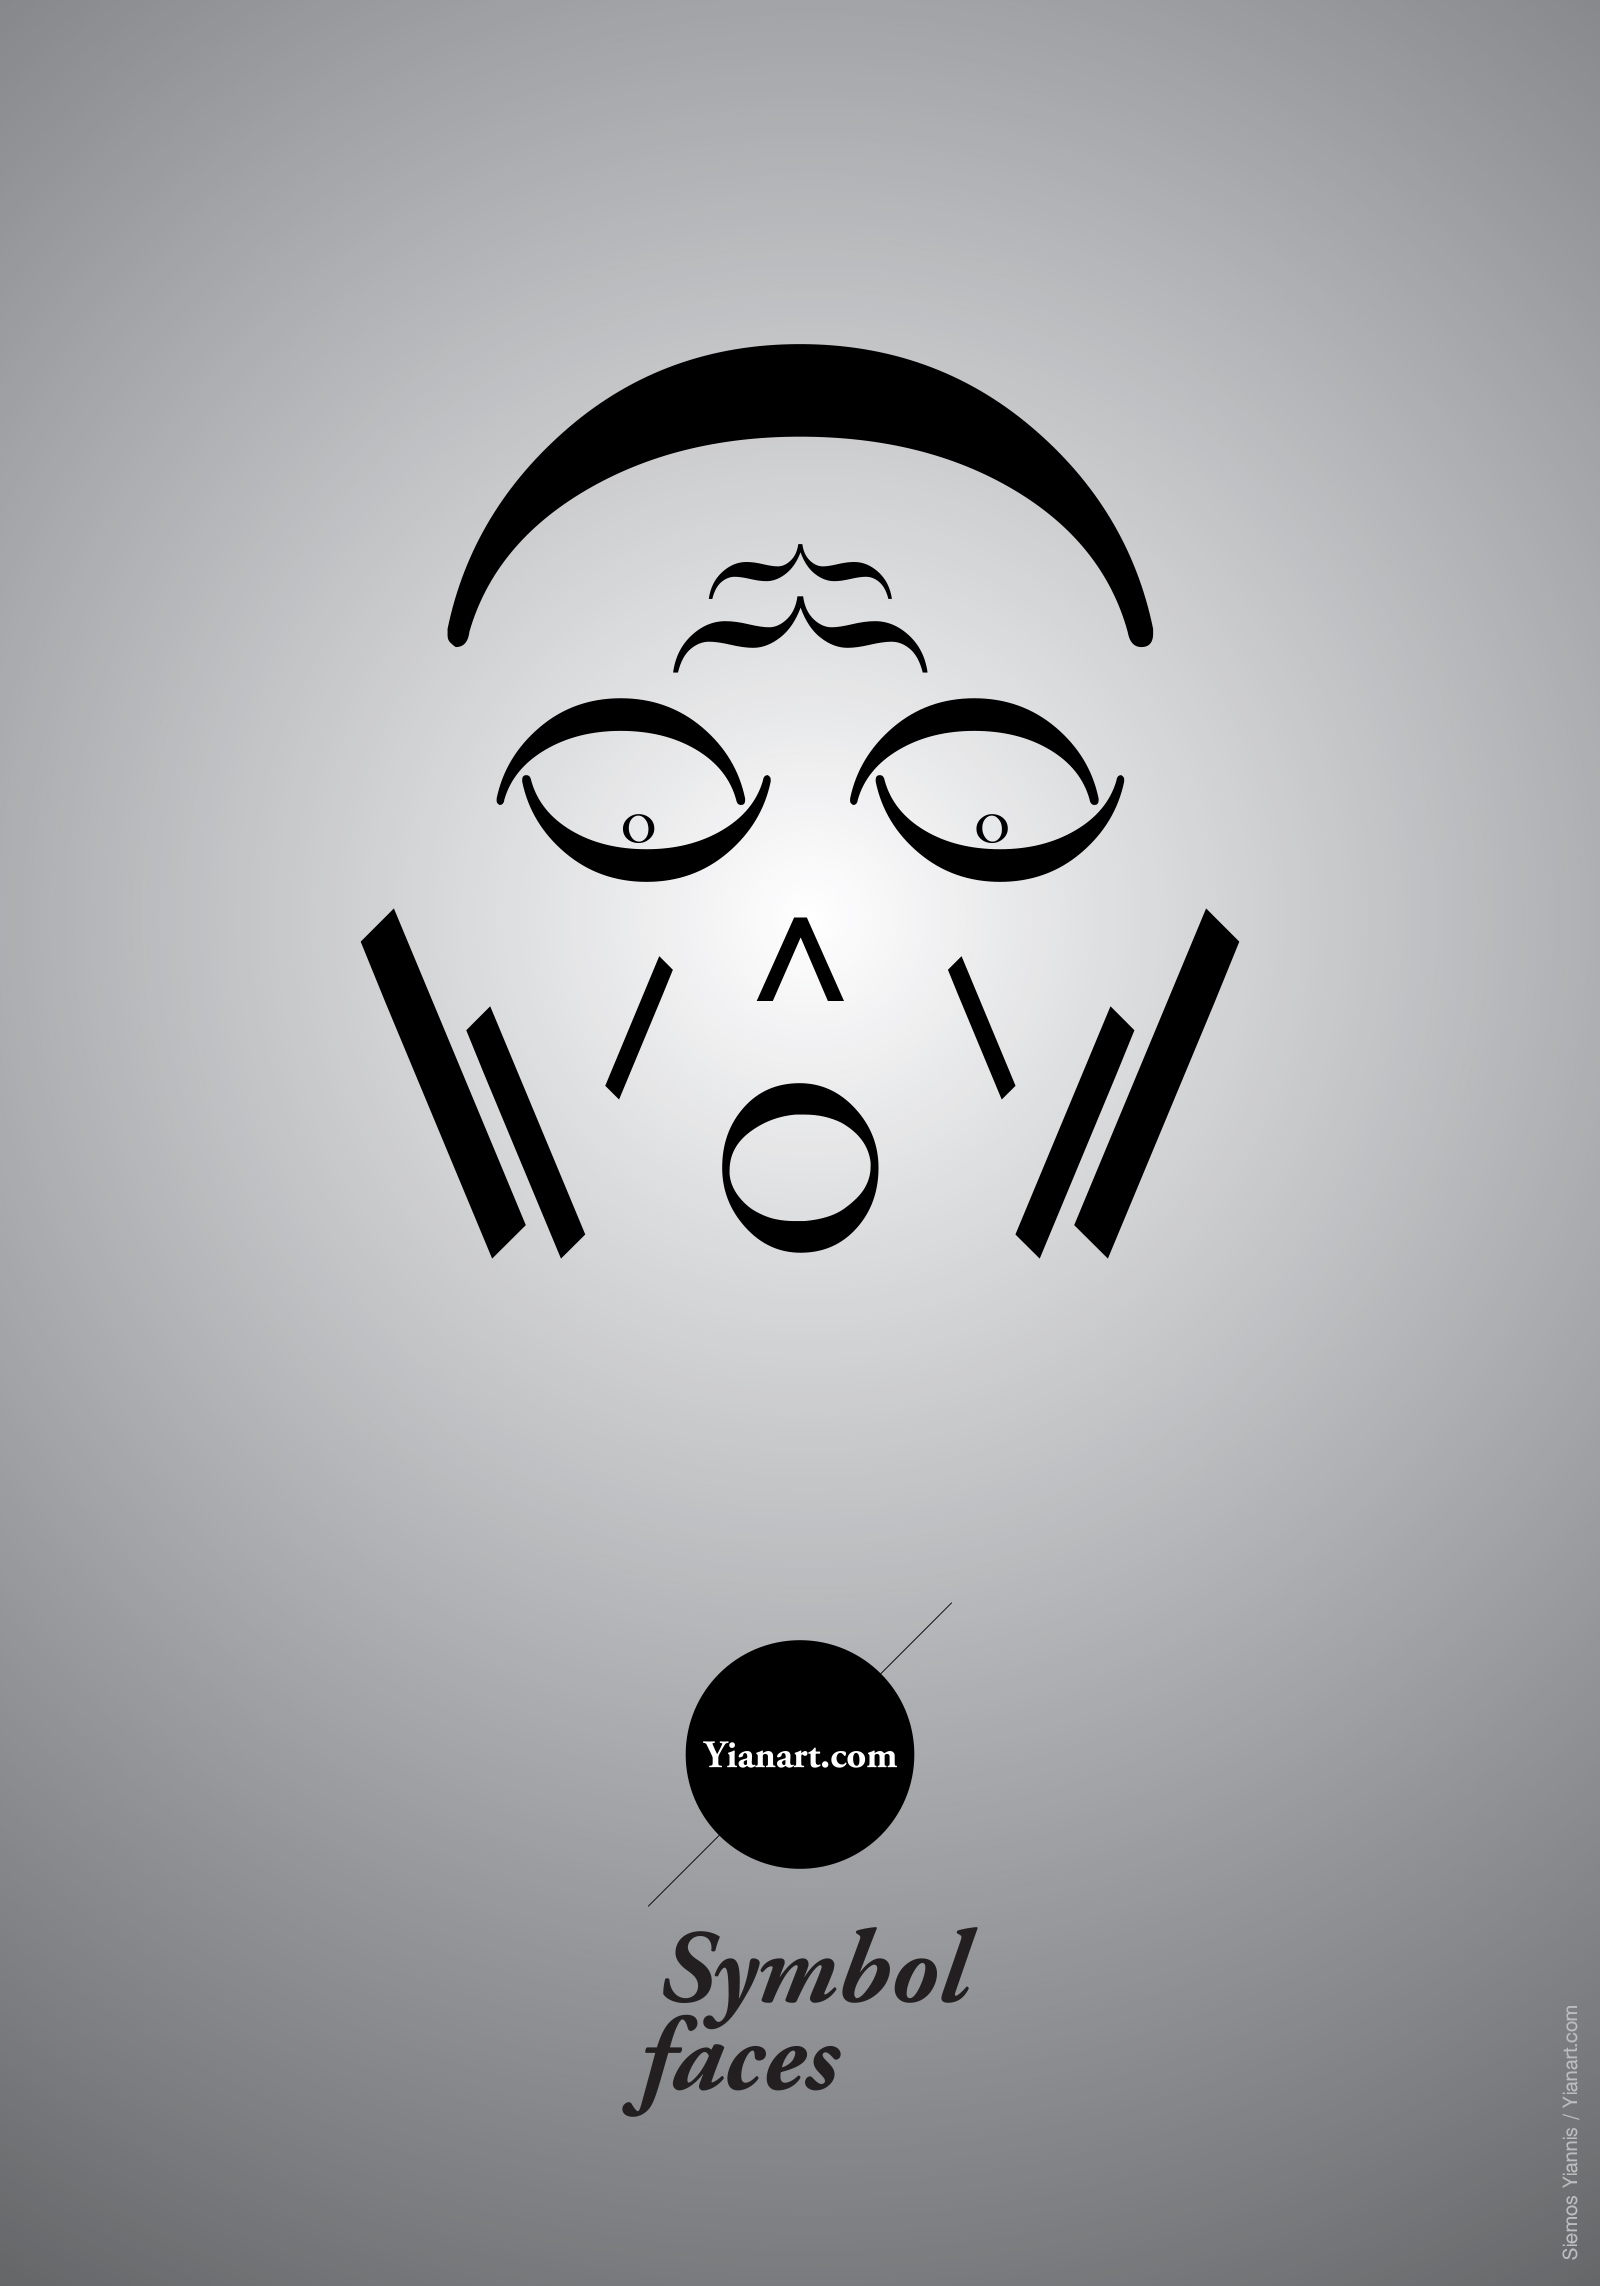 Symbol Faces_12_Yianart.com